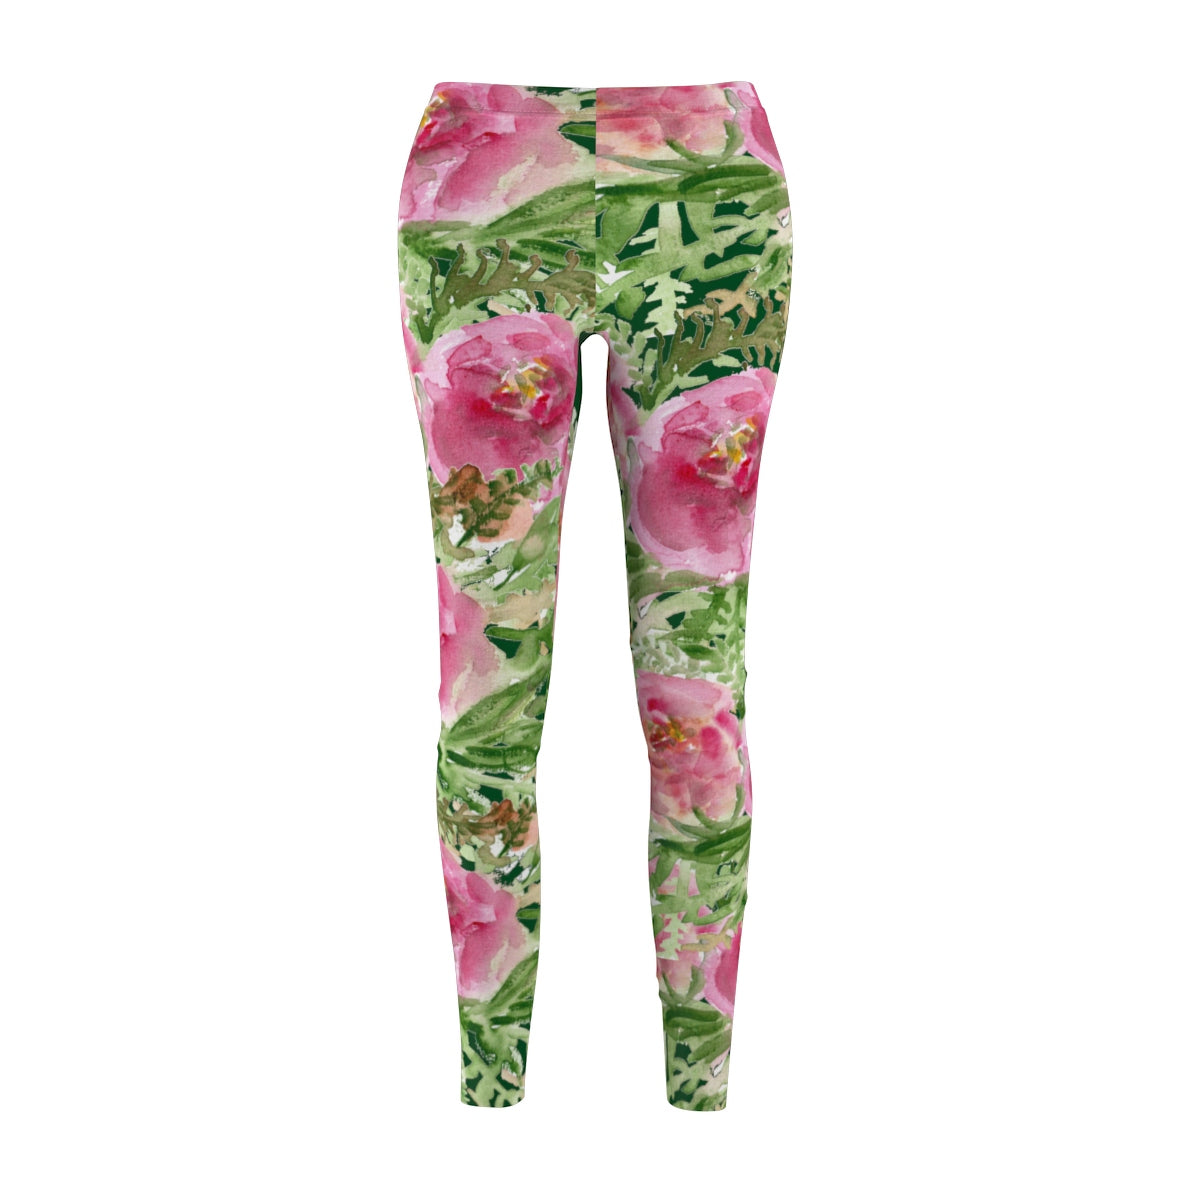 Dark Green Pink Rose Floral Print Women's Casual Leggings - Made in USA-Casual Leggings-M-Heidi Kimura Art LLC